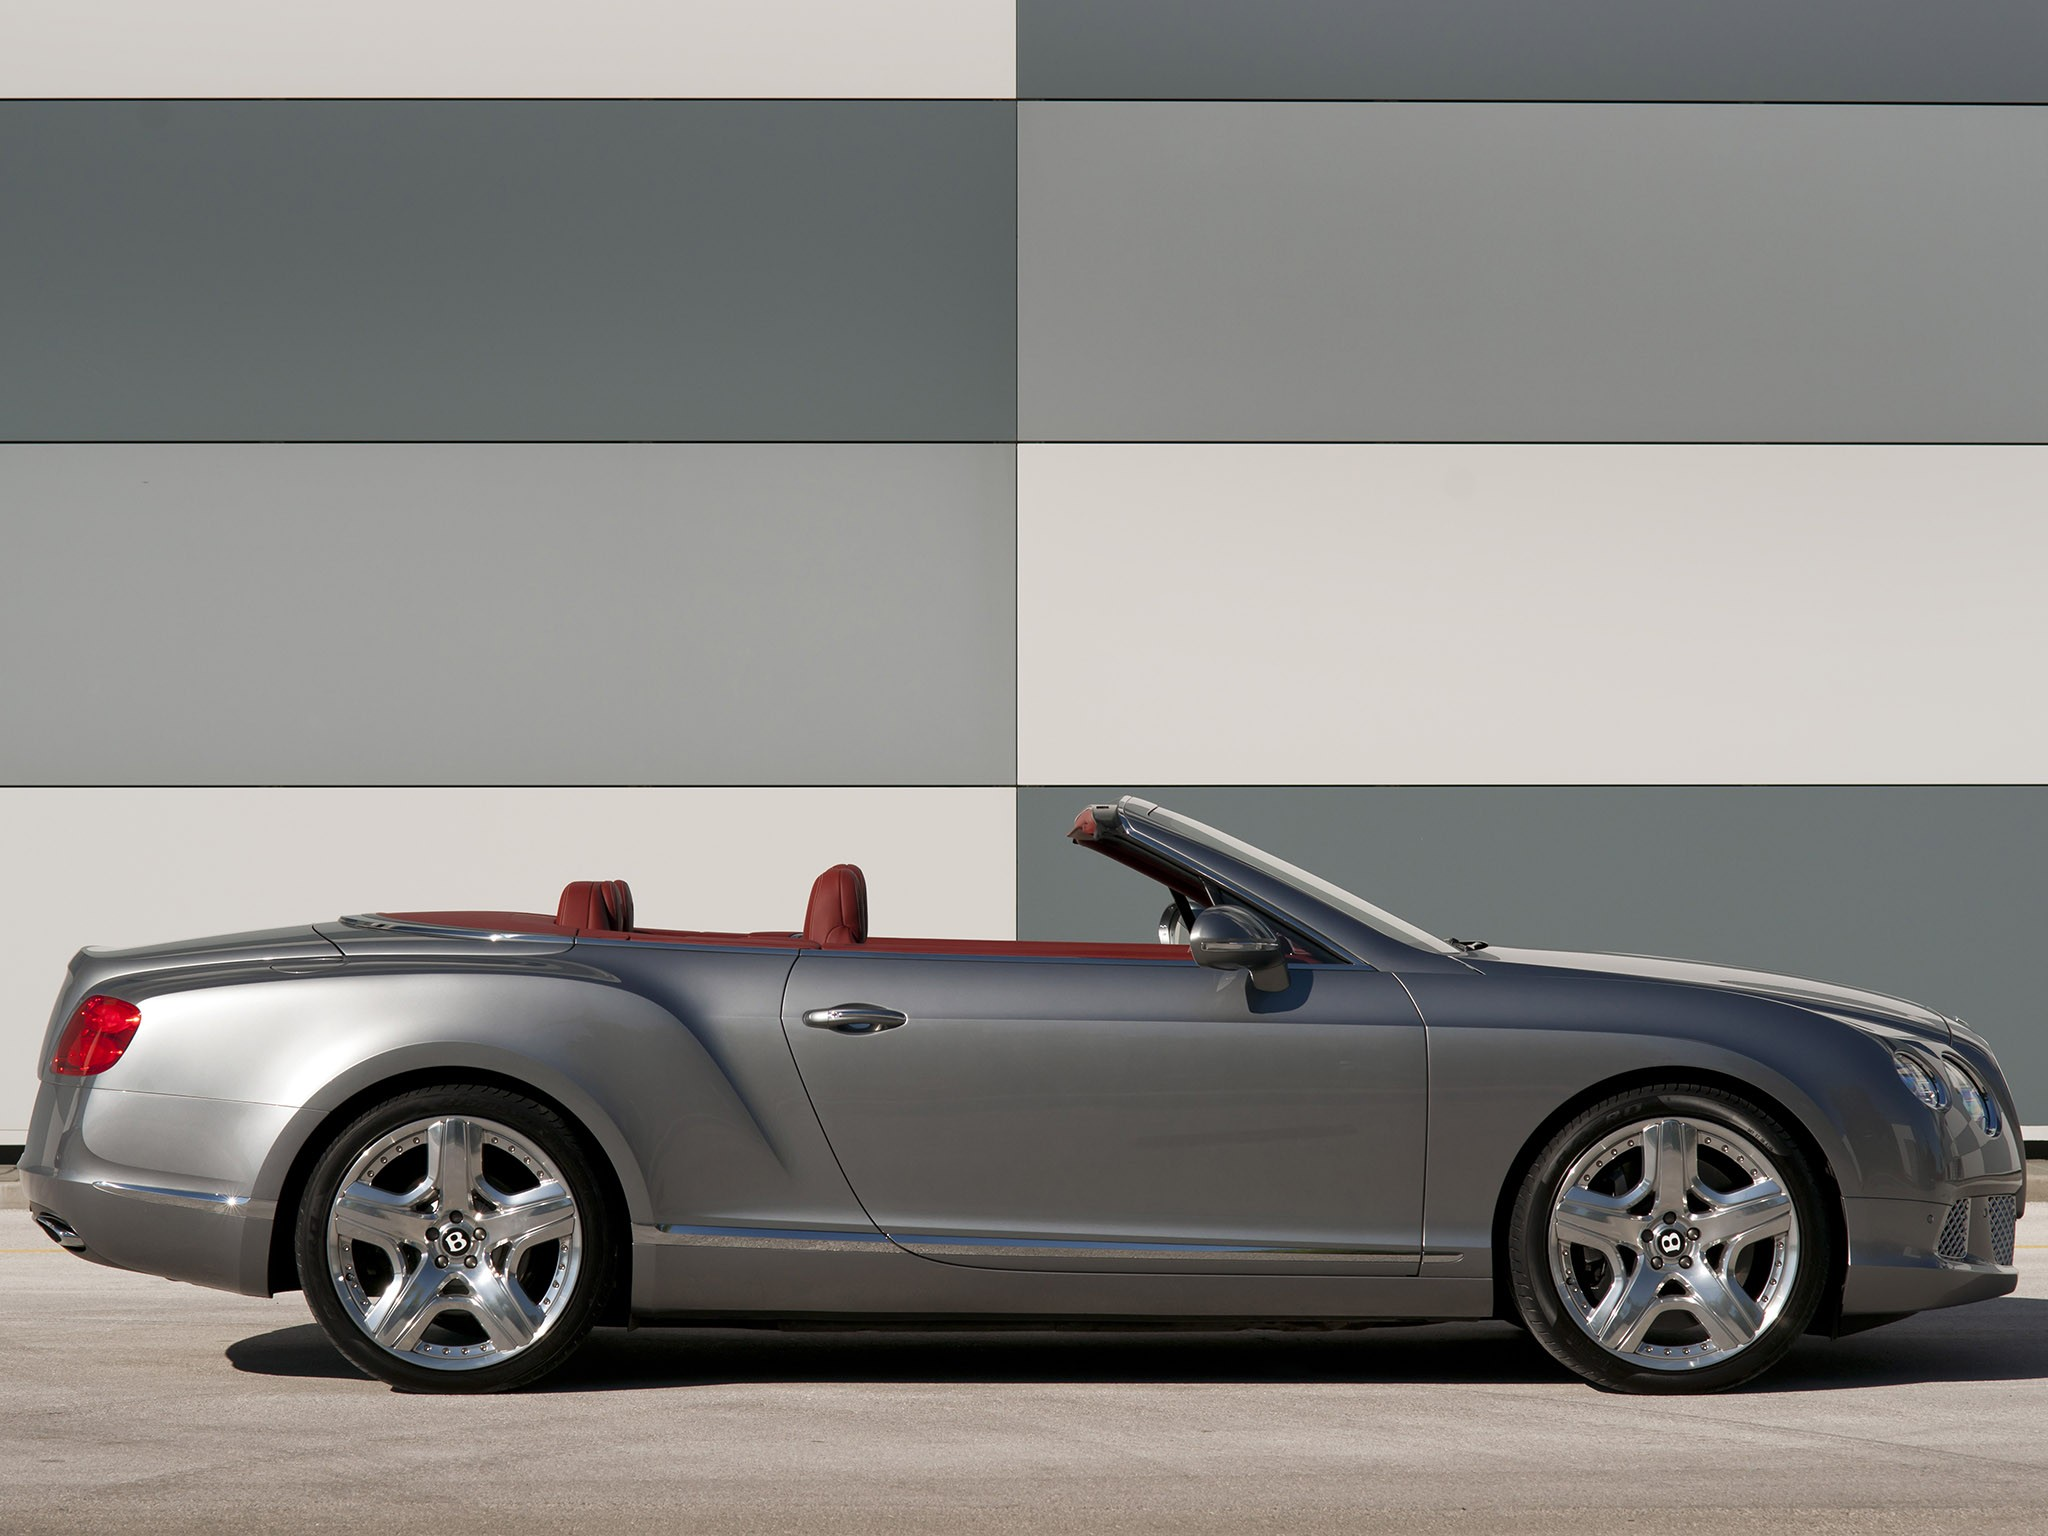 2011 Bentley Continental GTC Hallmark